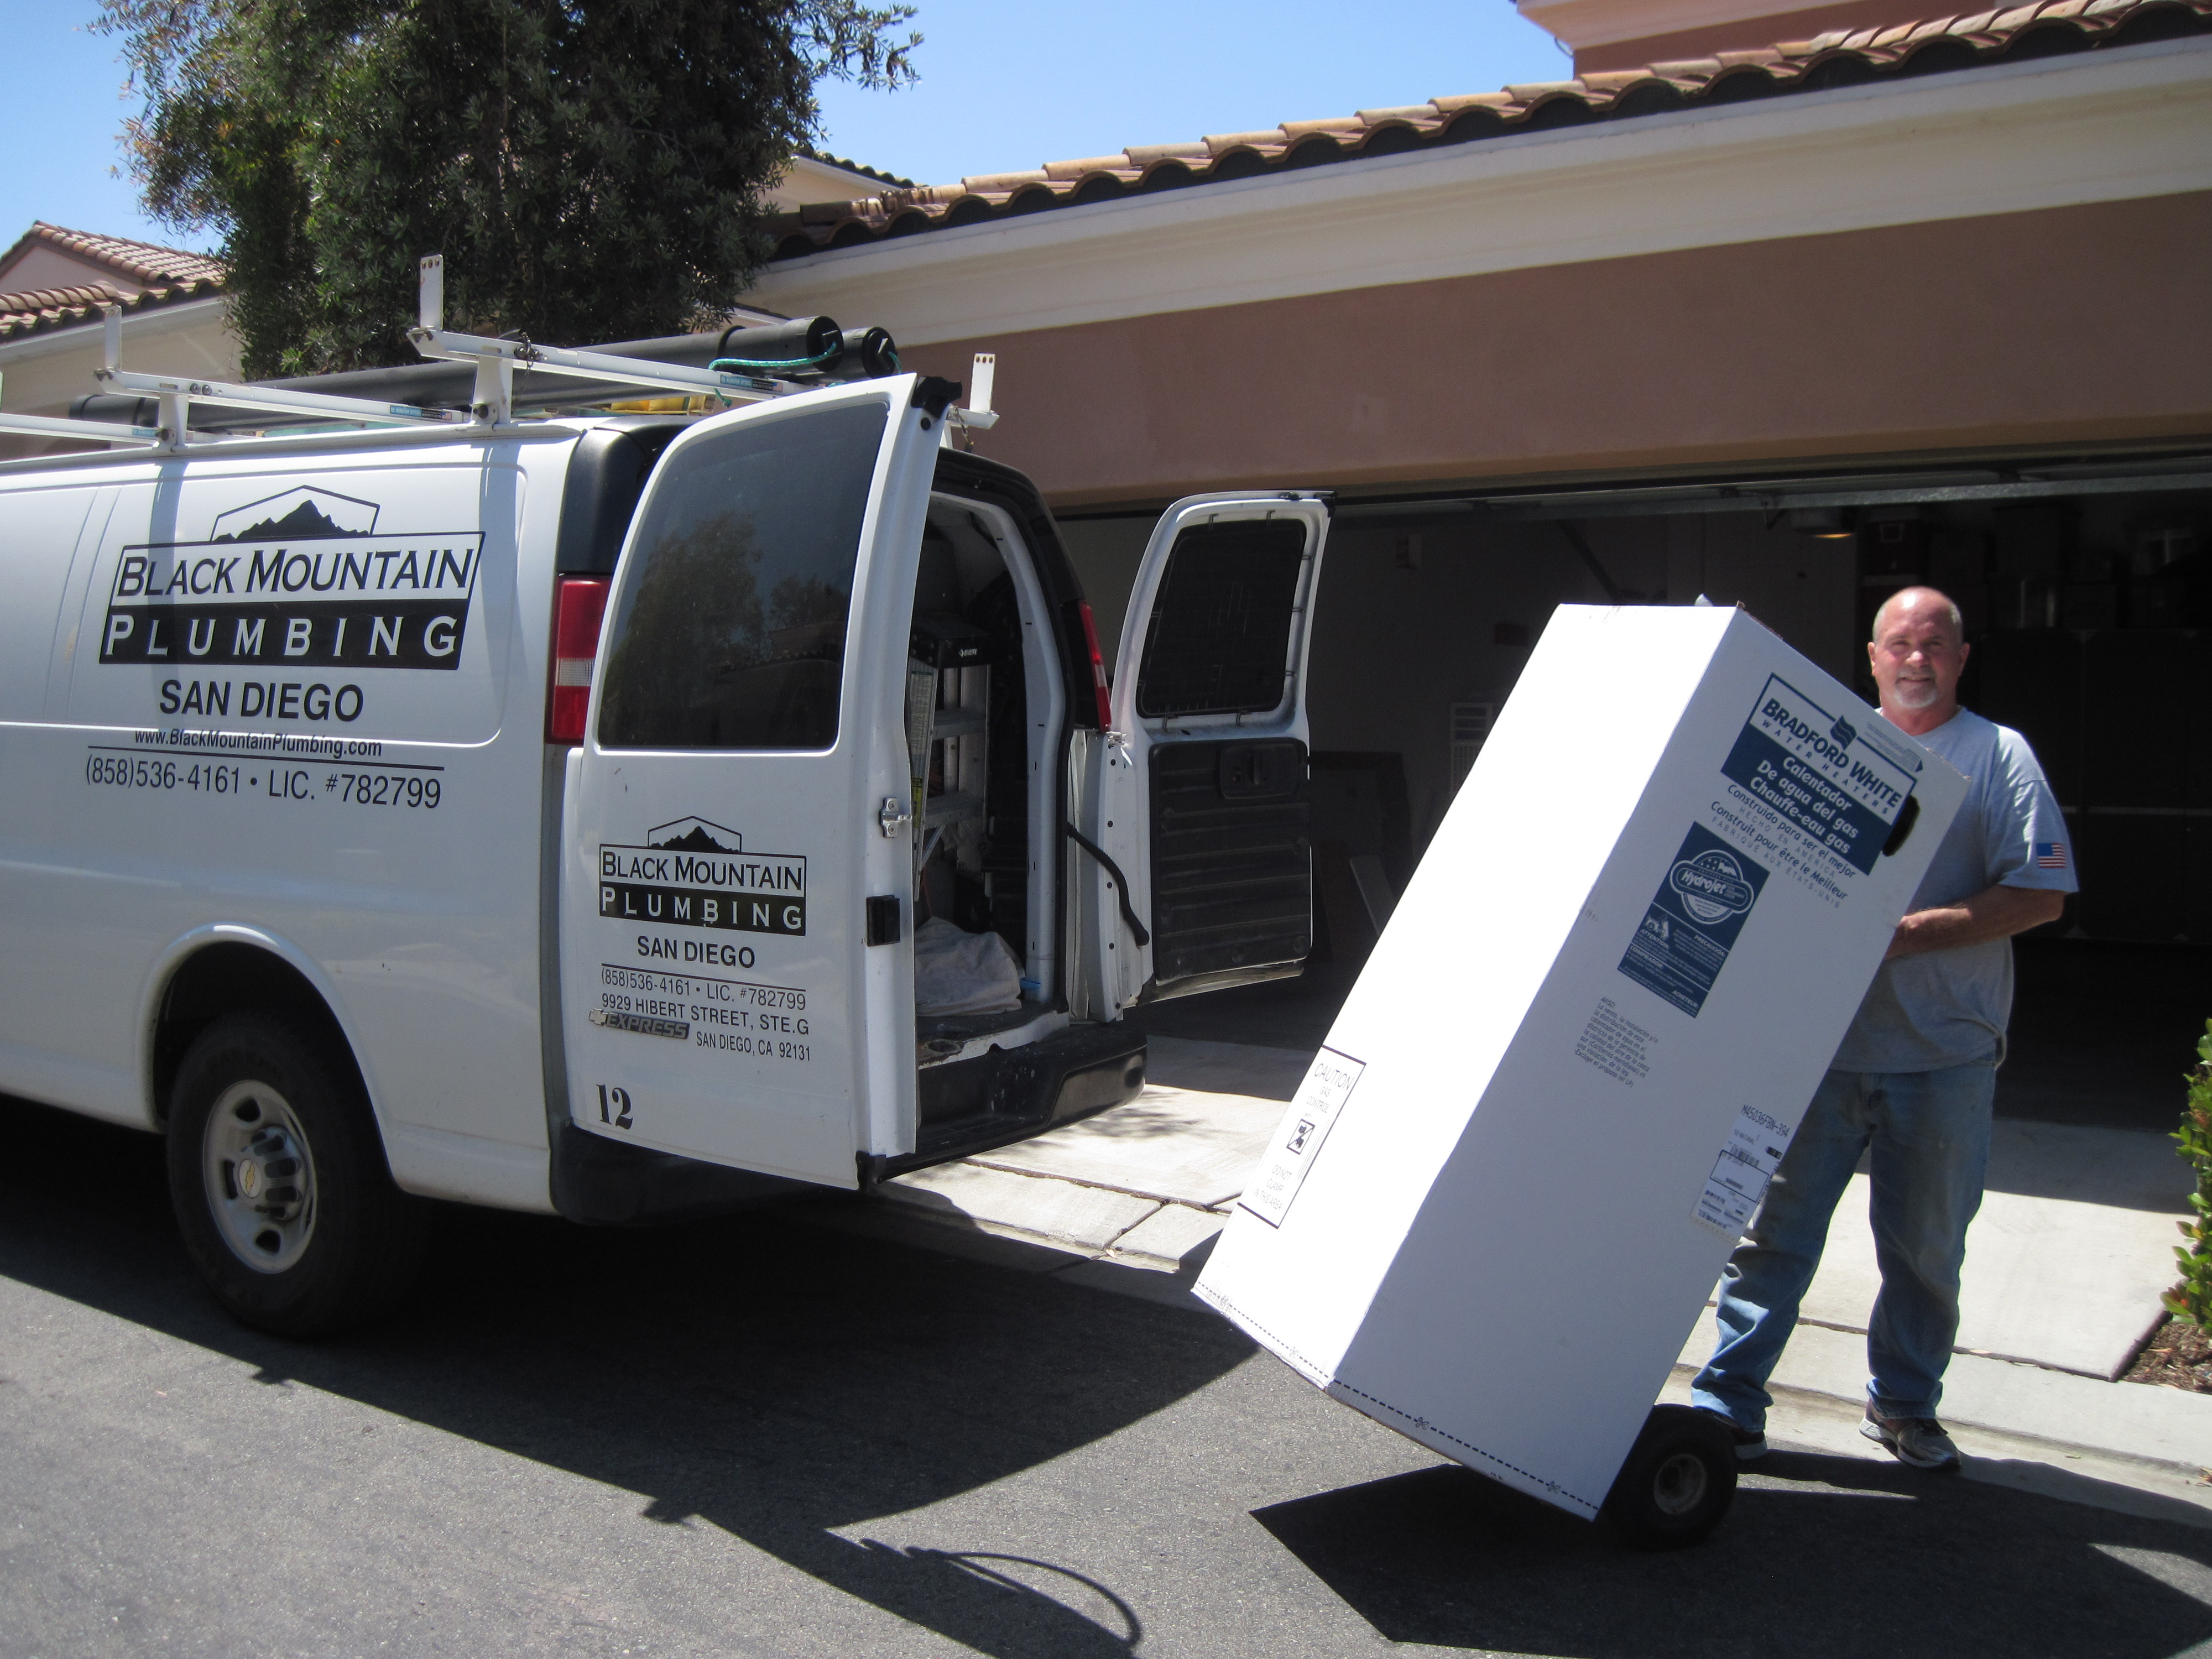 Water Heater Replacement, Repair And Installation San Diego Ca. Debt Consolidation Colorado Springs. Microsurgery For Spinal Stenosis. Nursing Schools Chicago Il What Is Voip Calls. Renters Insurance For Storage Unit. Medicaid Billing Software Urban Radio Station. Cost Of Tummy Tuck In Houston TX. State Of Texas Incorporation. Electrical Engineering Courses Online